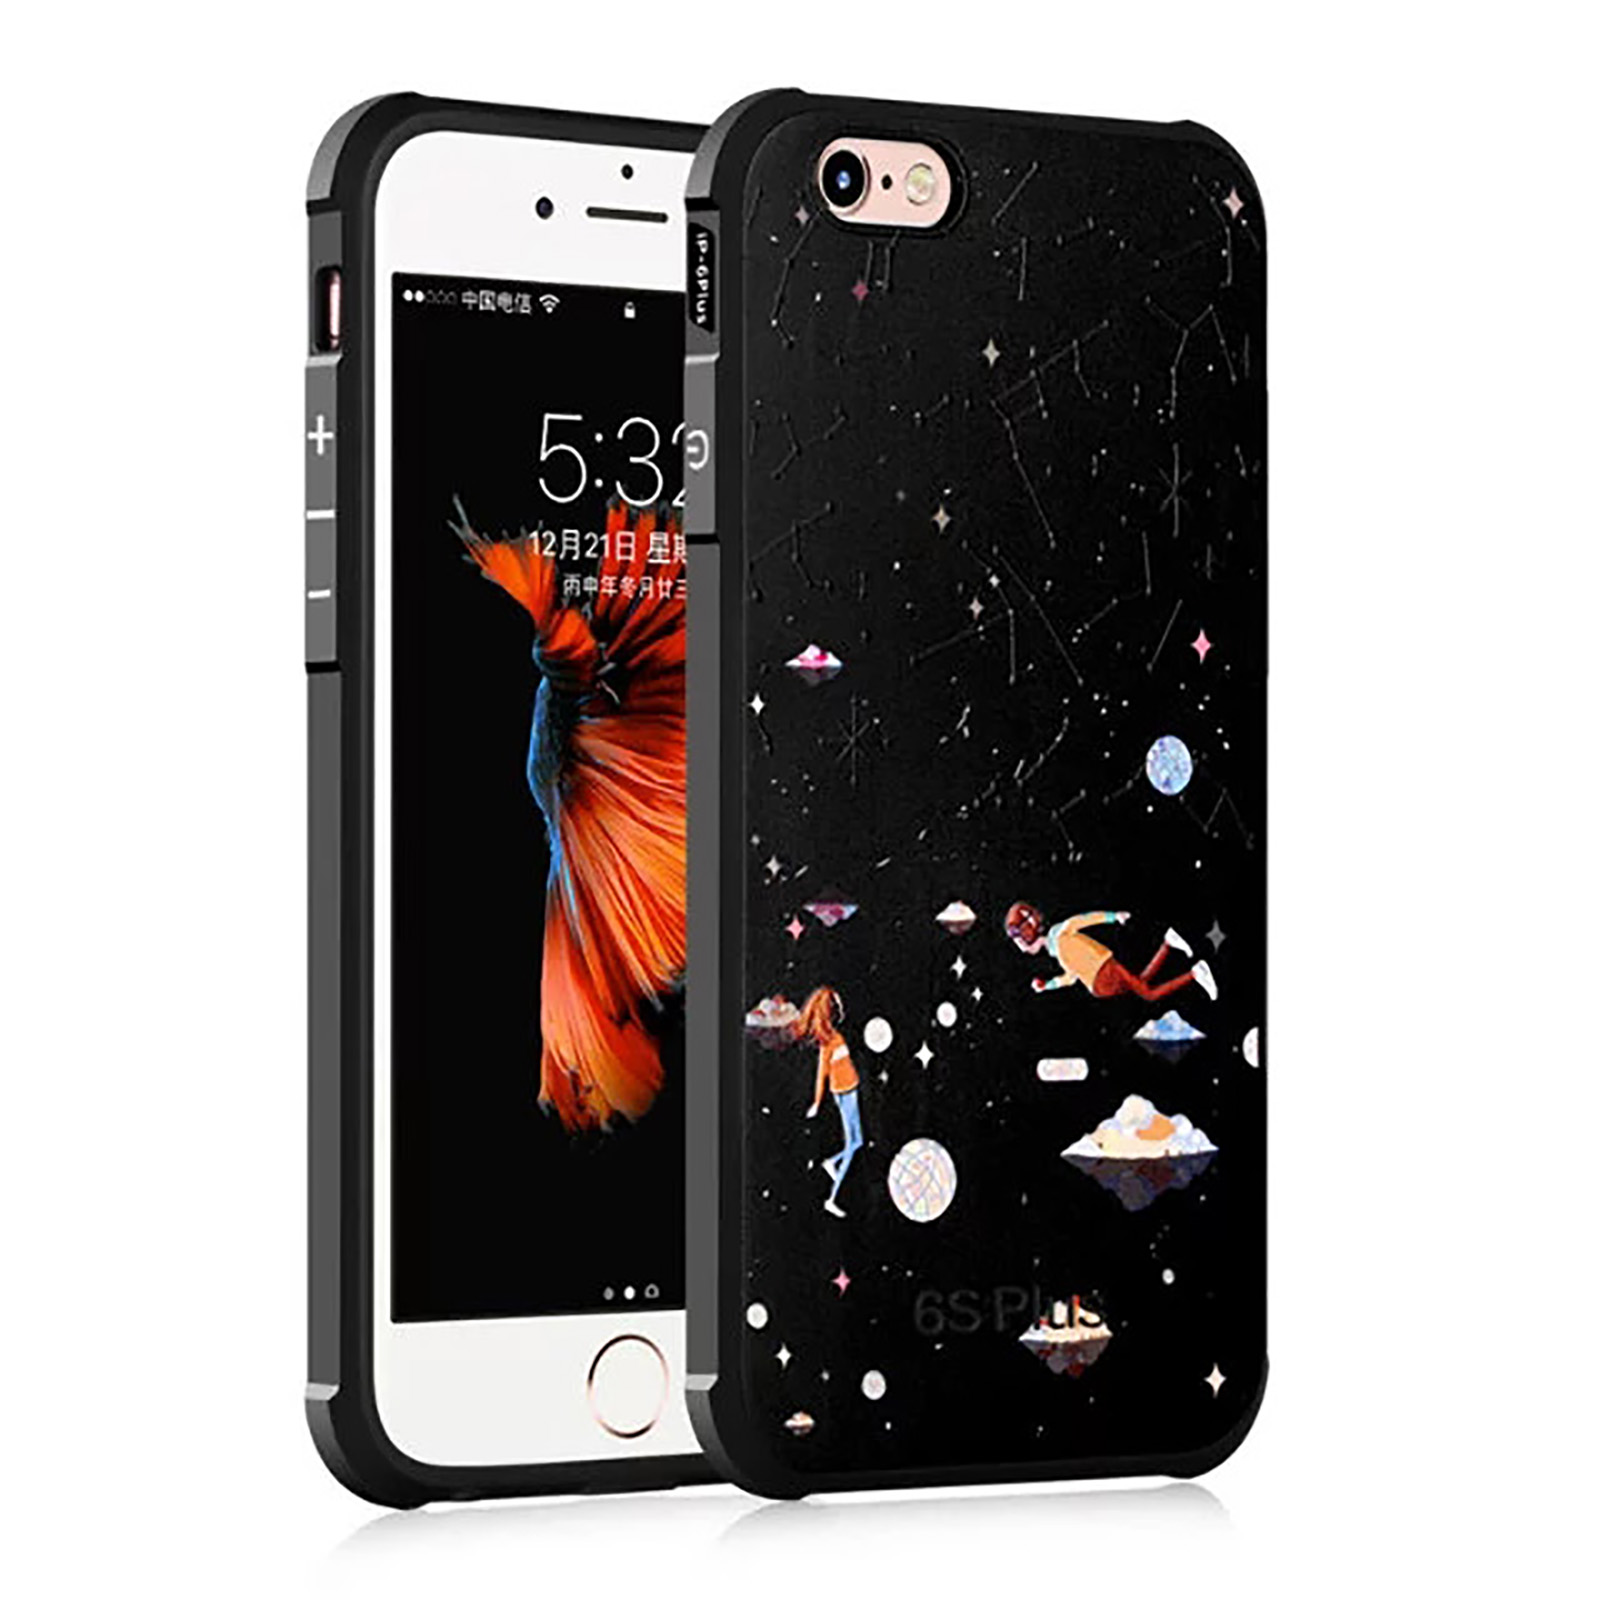 Squishy Case For Iphone 5s : Black Shockproof Thin Silicone Soft TPU Back Case Cover For iPhone 5S 6S 7 Plus eBay